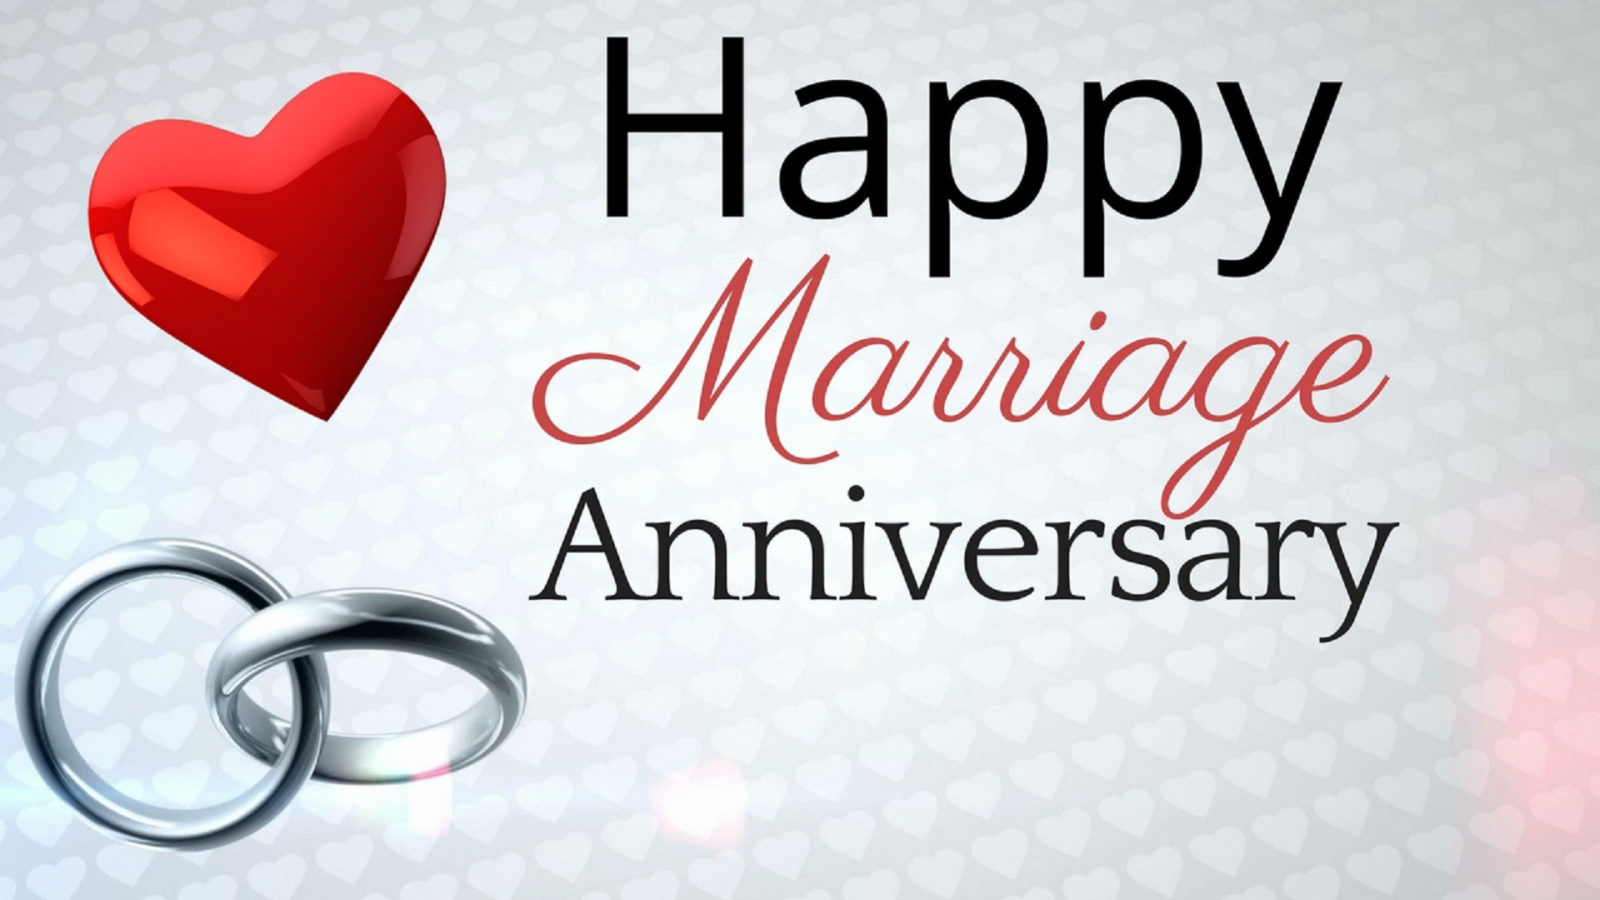 Marriage Anniversary Greeting Cards For Couple